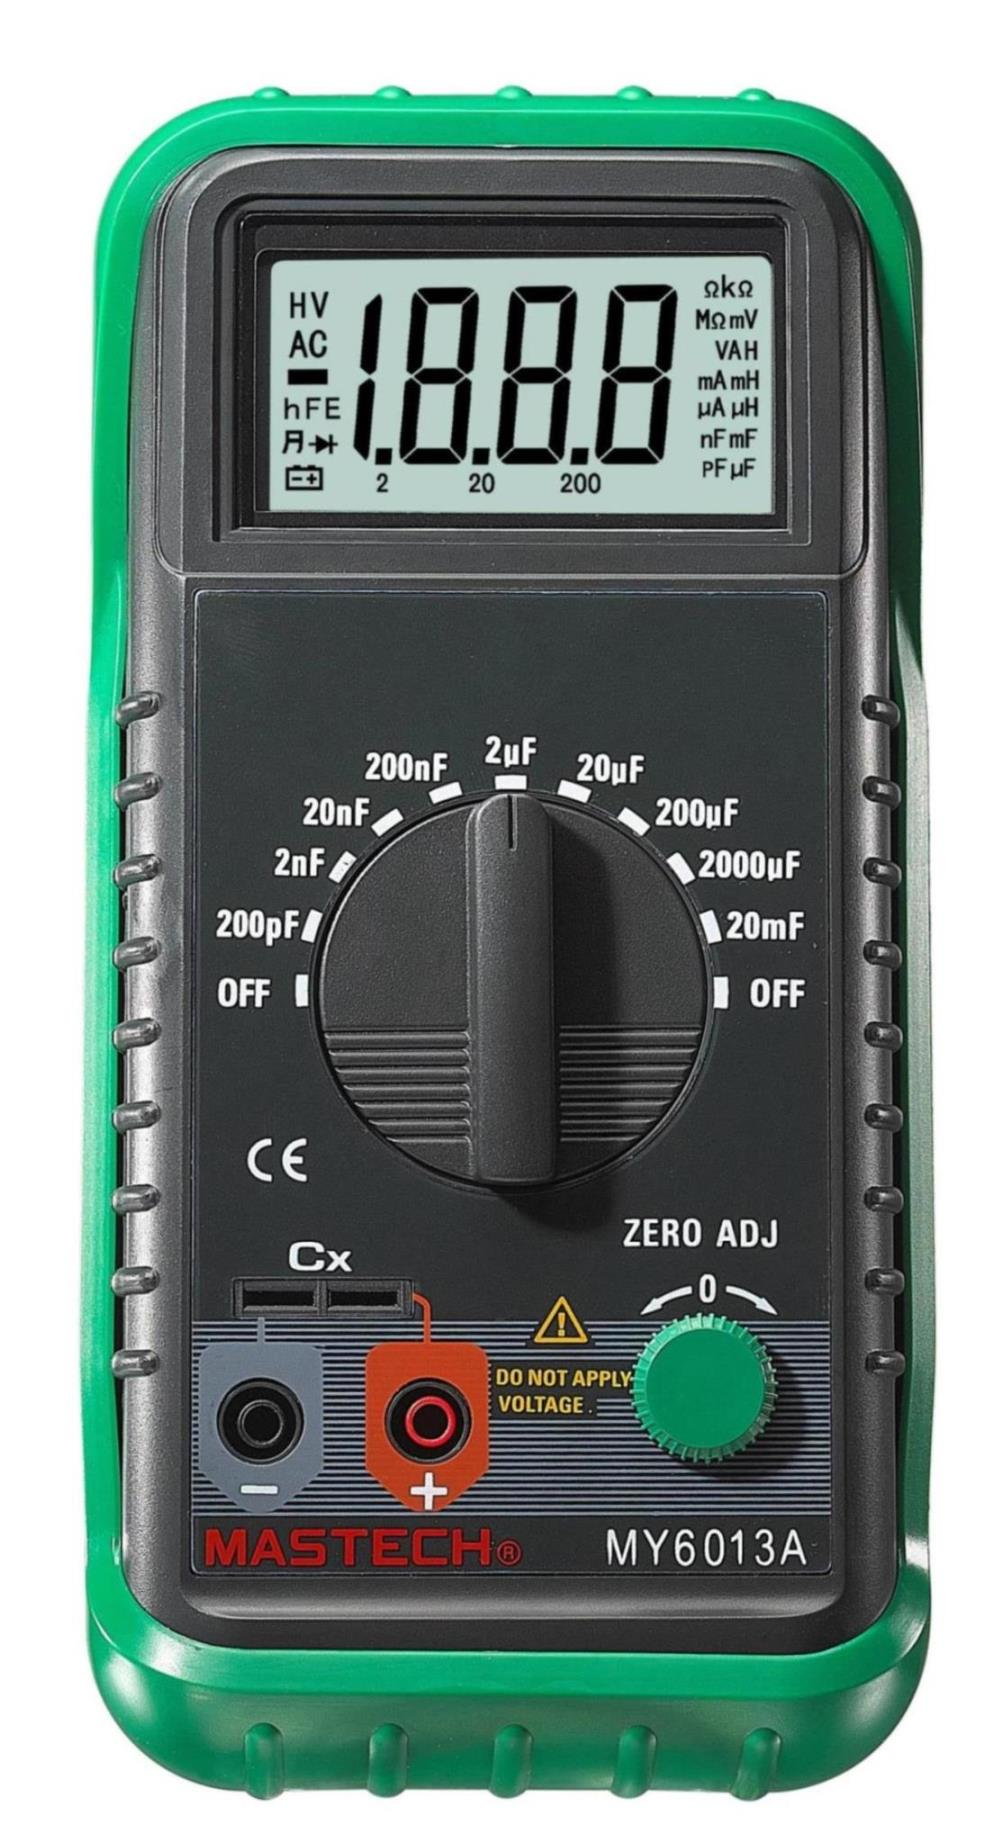 MASTECH MS6013 1999 Counts Portable 3 1/2 Digital Capacitance Meter Capacitor Tester 200pF to 20mF